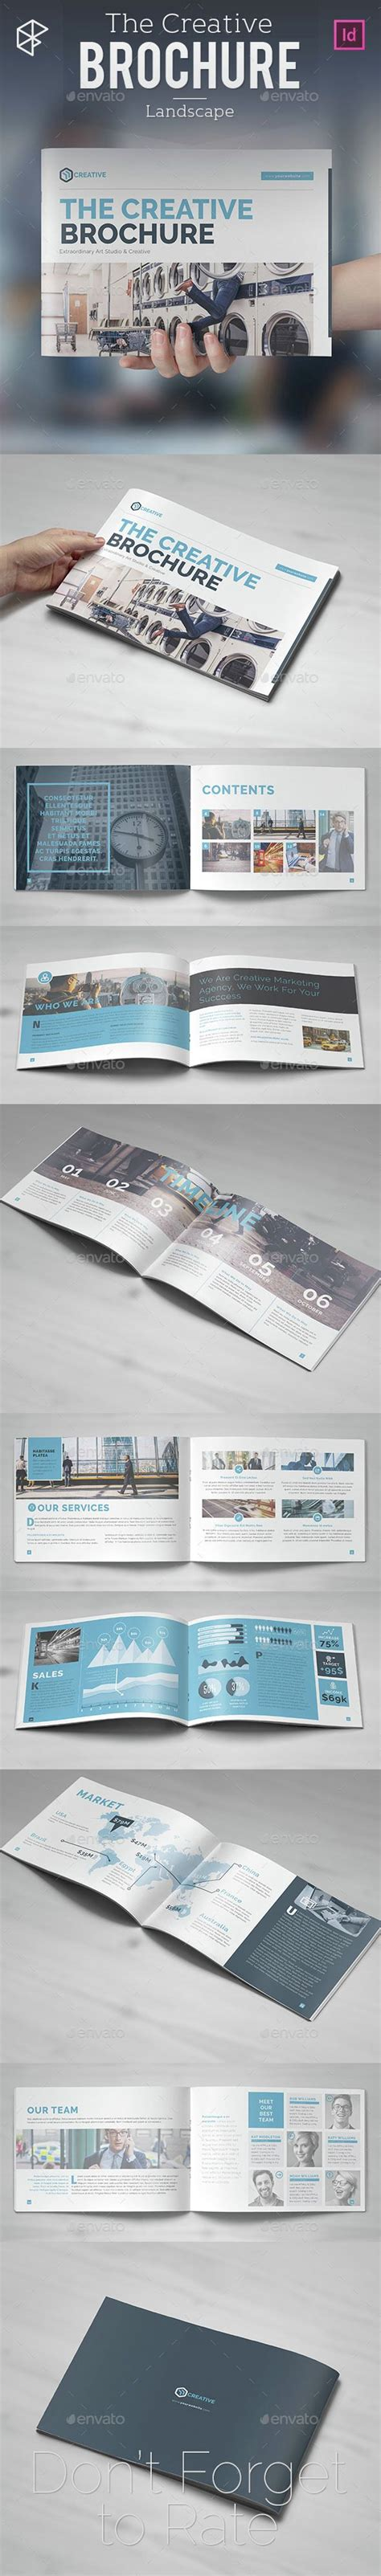 change layout to landscape in indesign 1000 images about dtp editorial design on pinterest